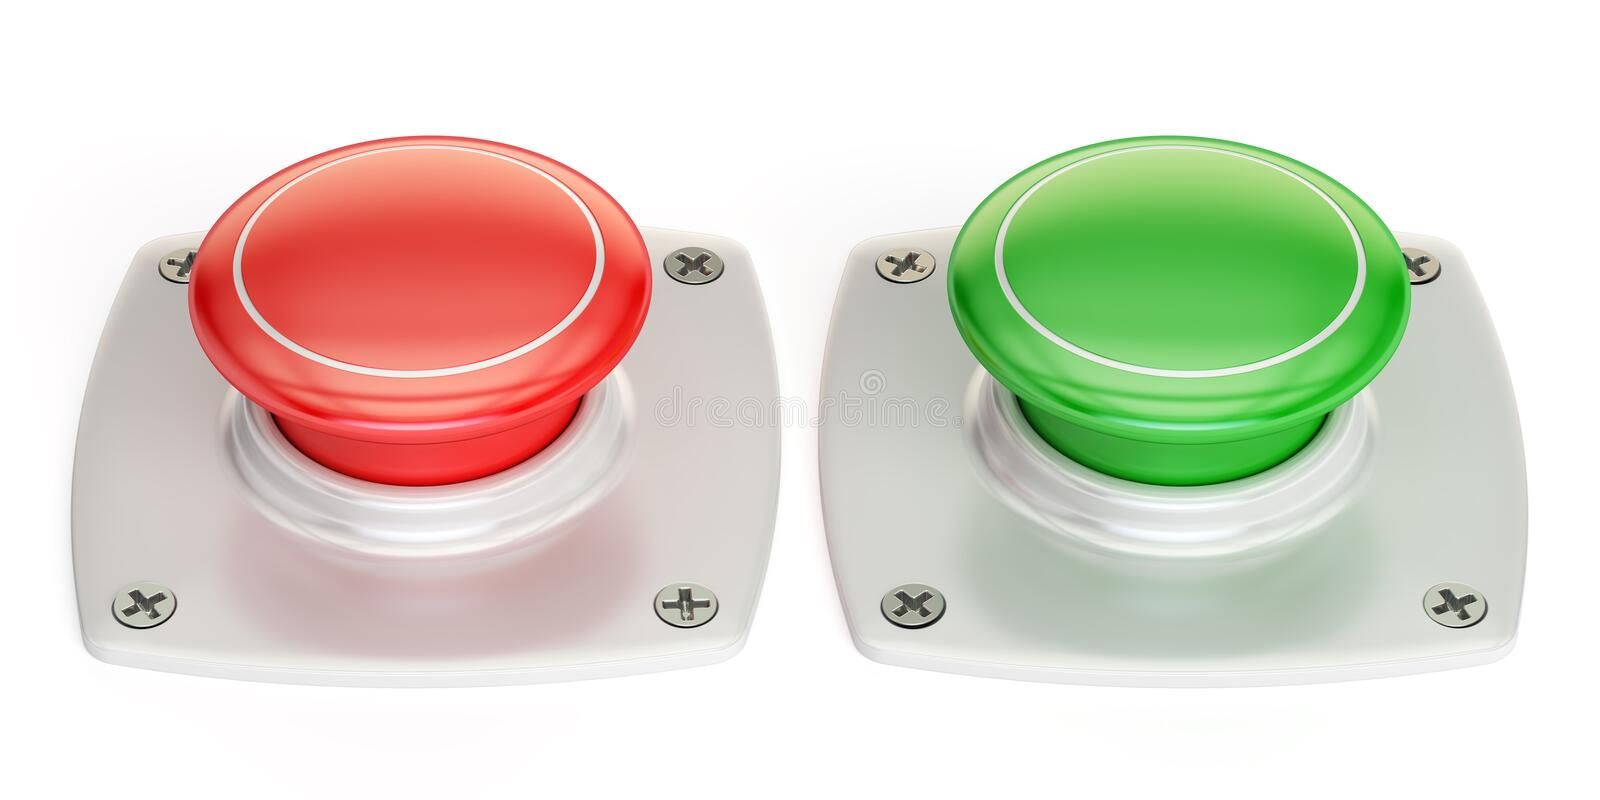 Red and green push buttons, 3D rendering. On white background royalty free illustration